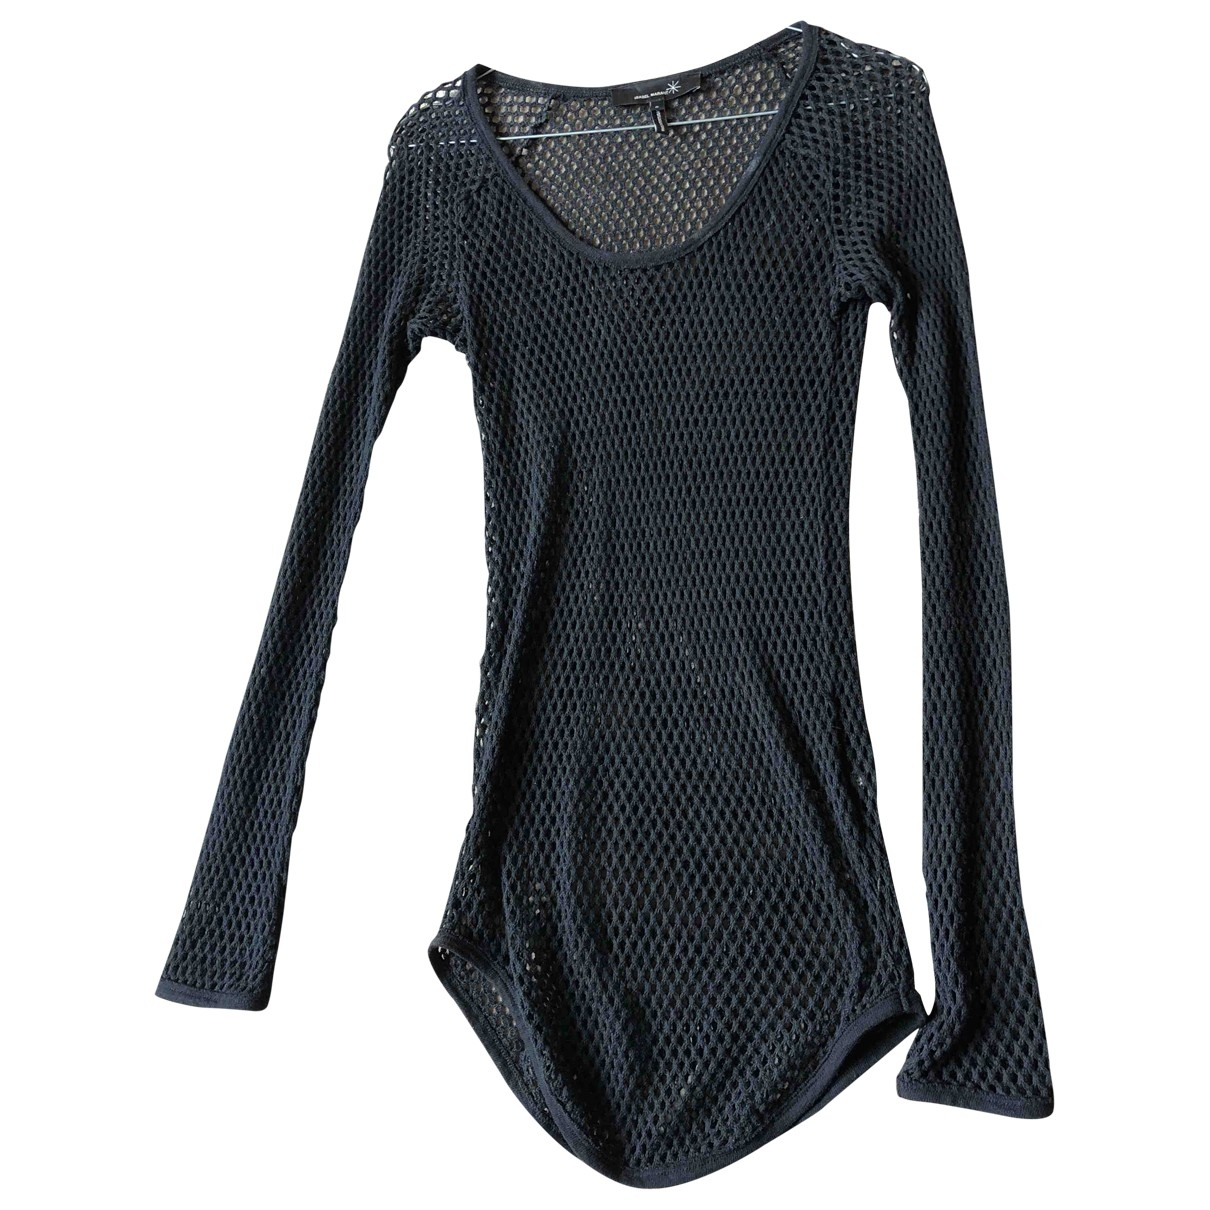 Isabel Marant \N Black Cotton  top for Women 0 0-5